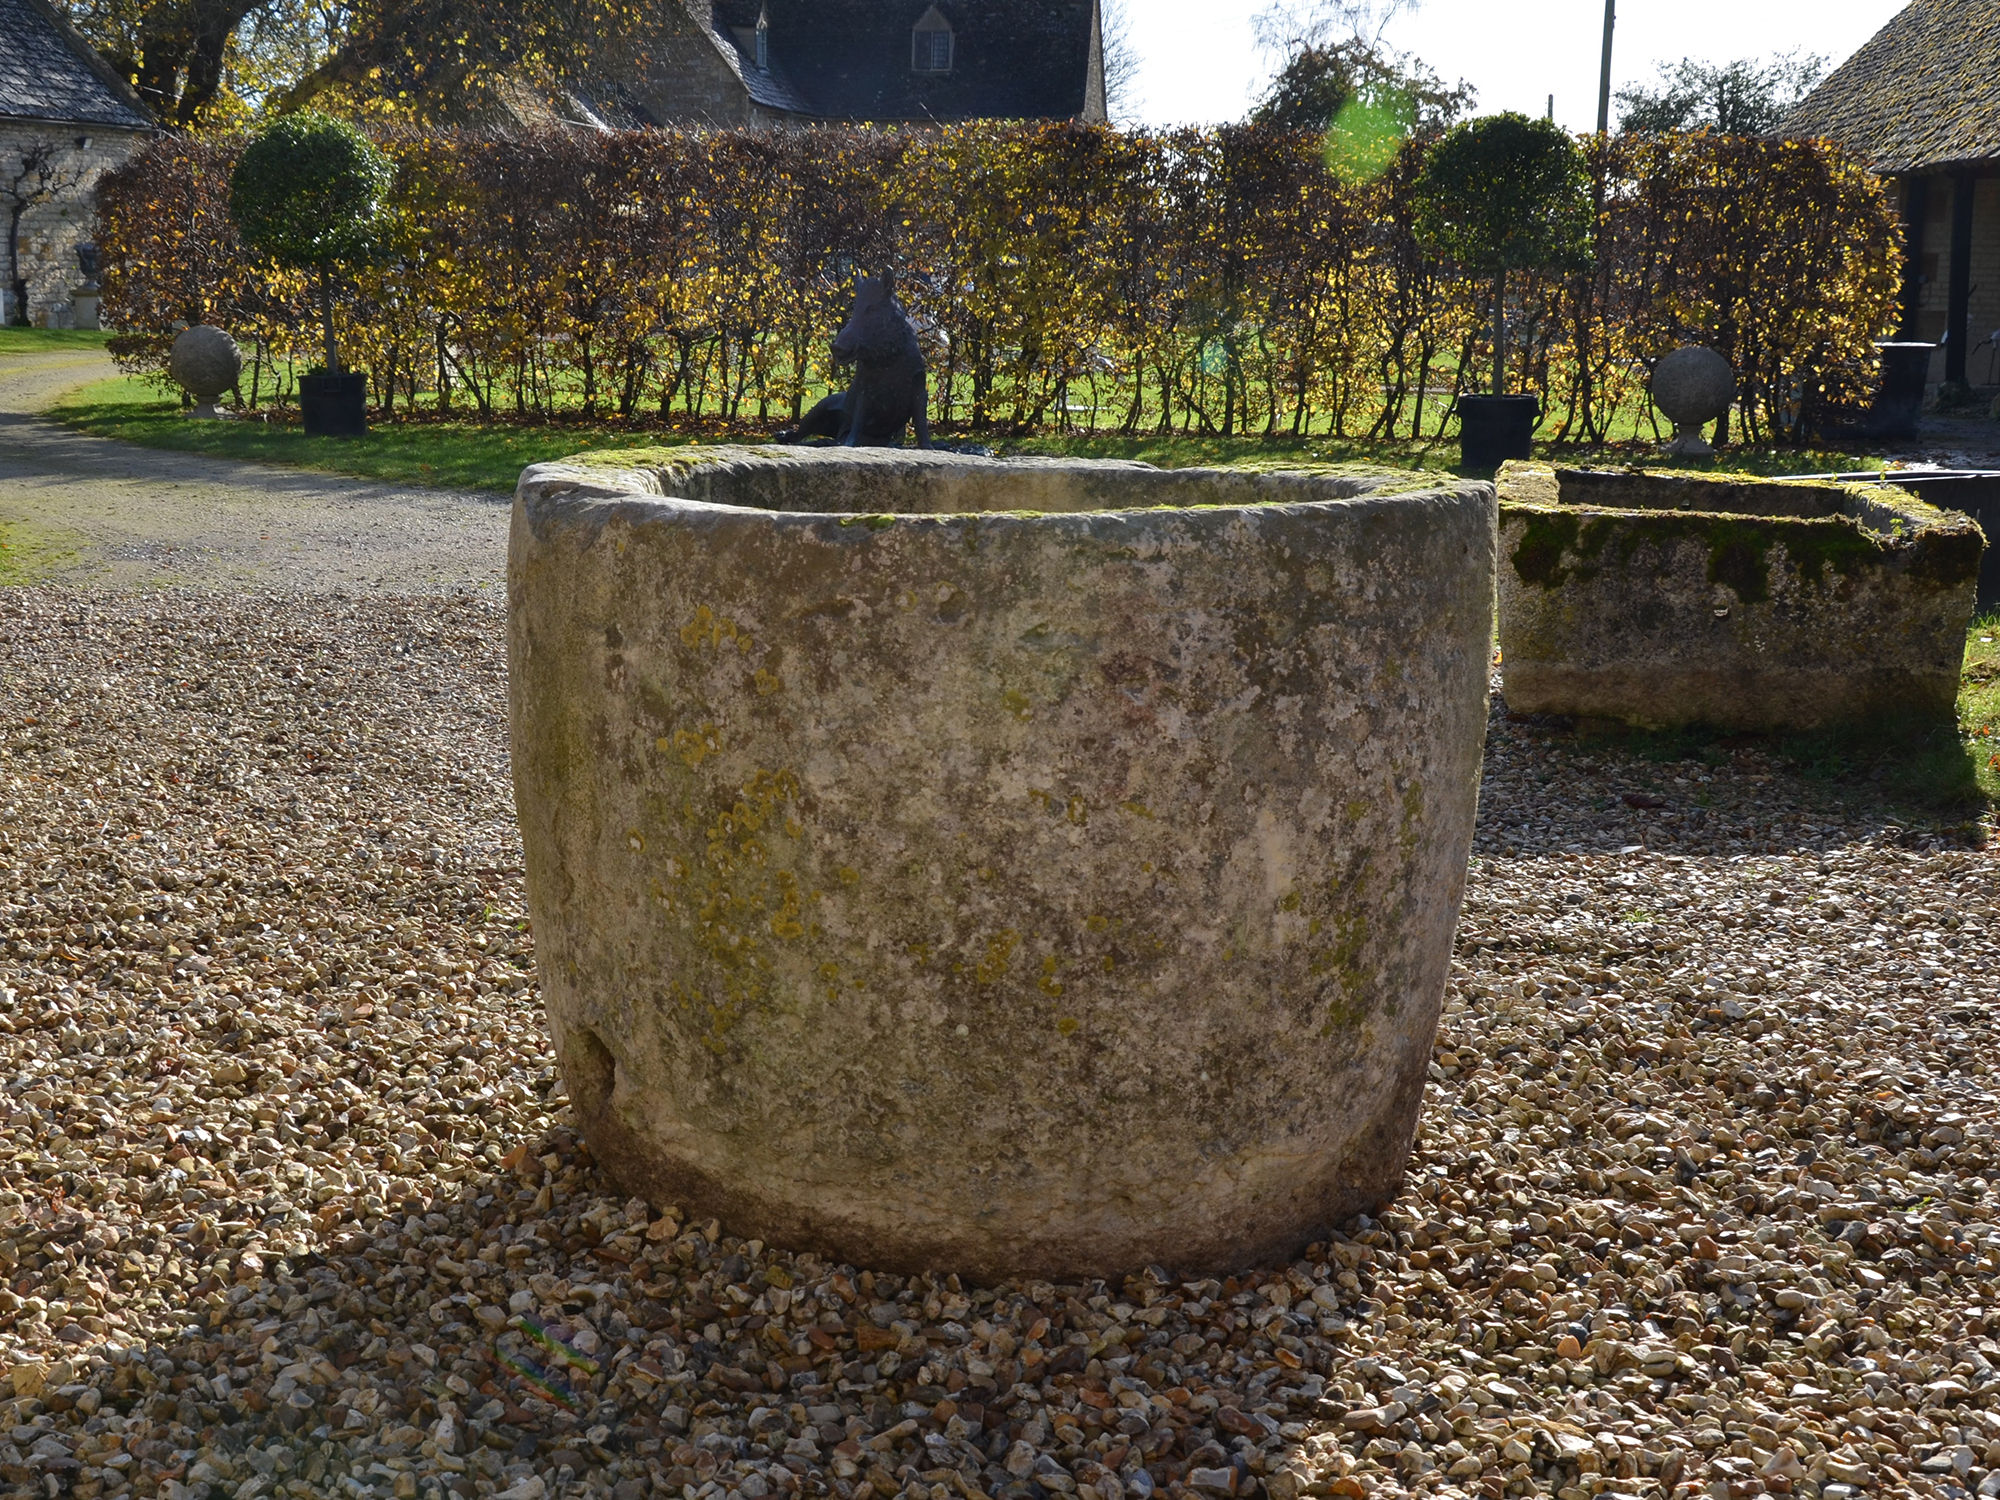 A large 18th century circular stone trough